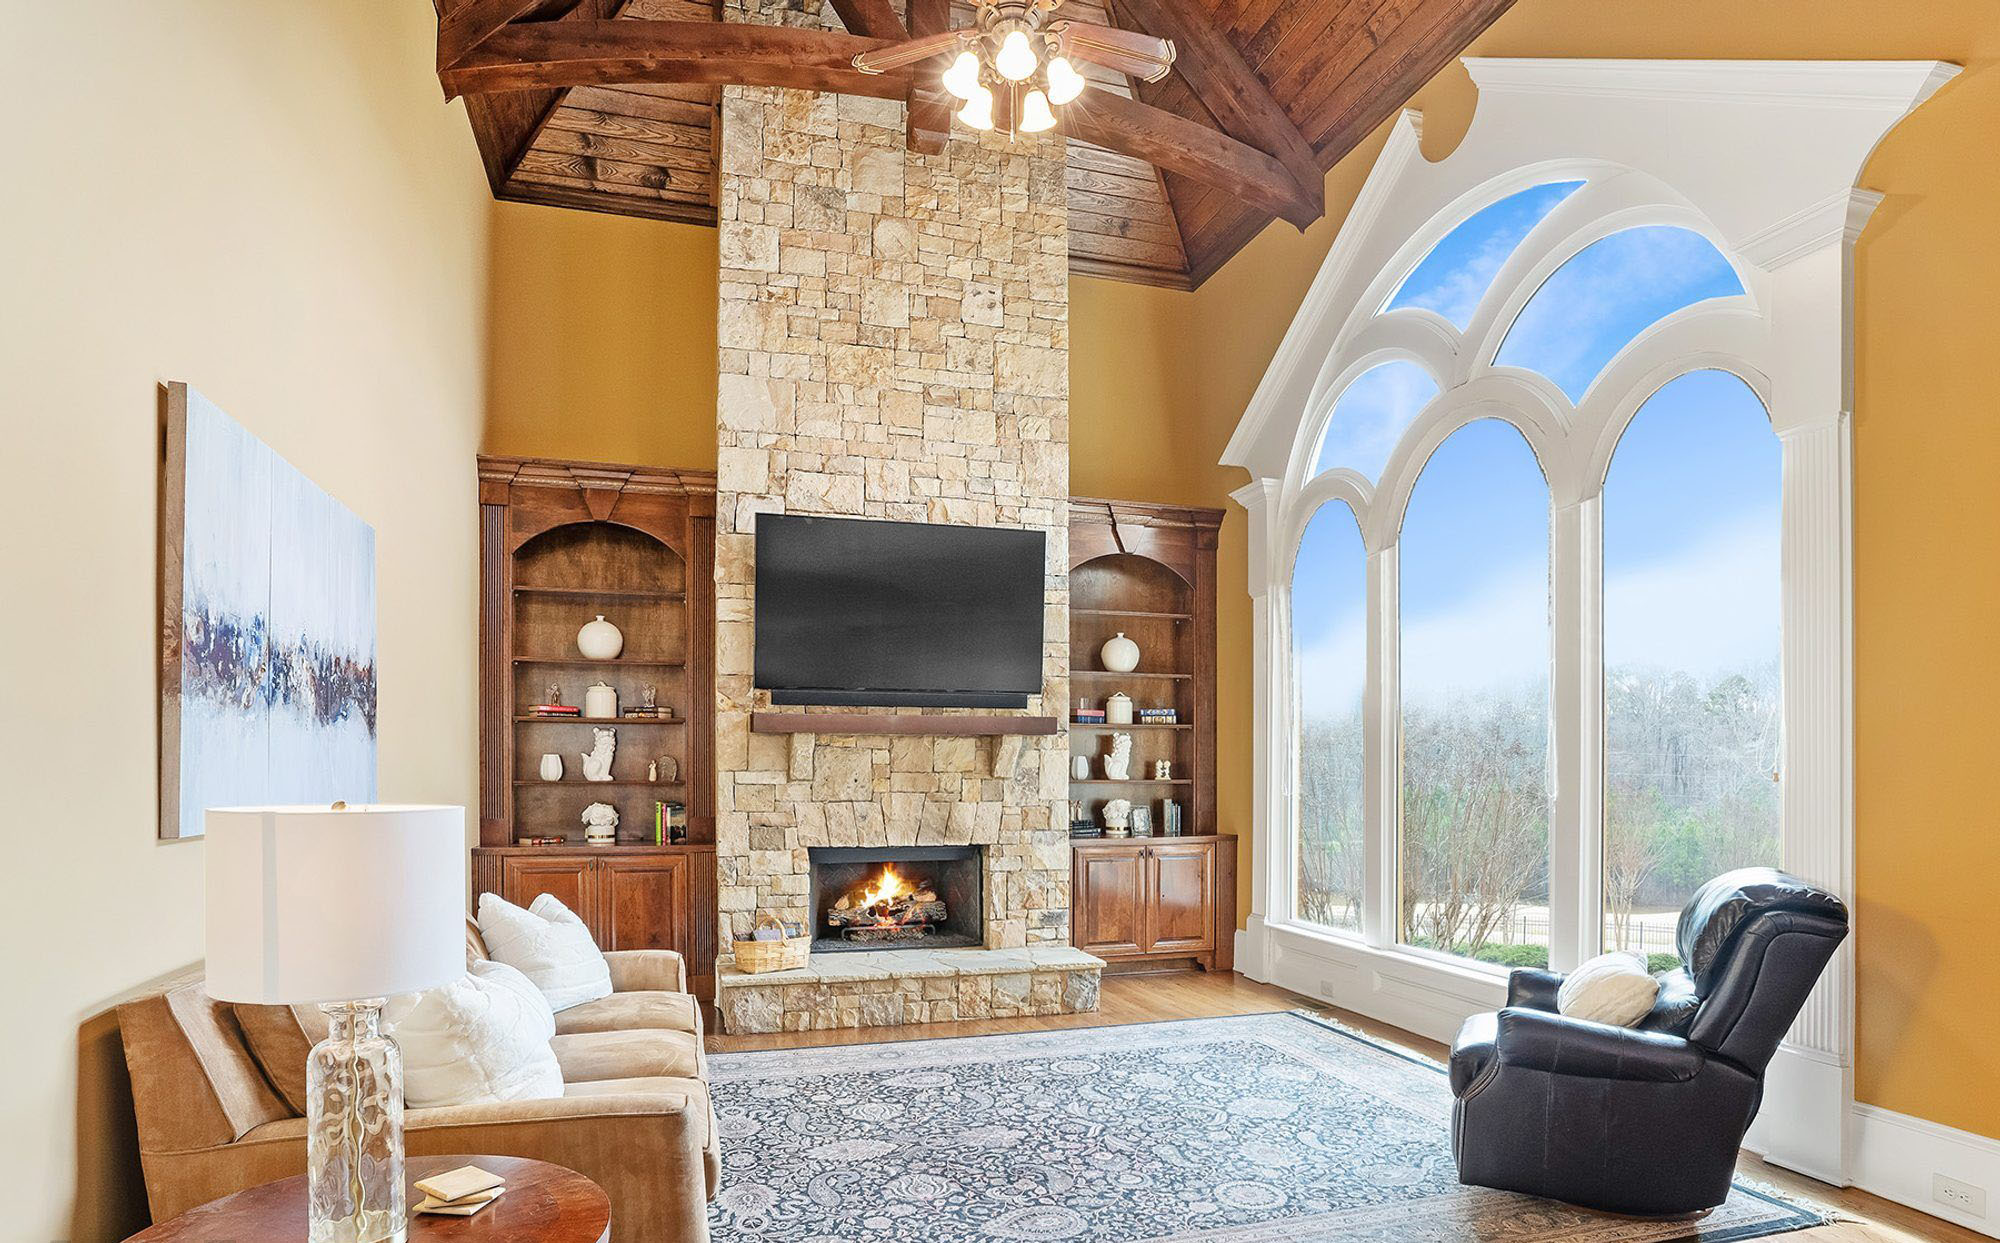 Wood burning fireplace with stacked stone veneer and a raised stone hearth. fireplace design ideas.